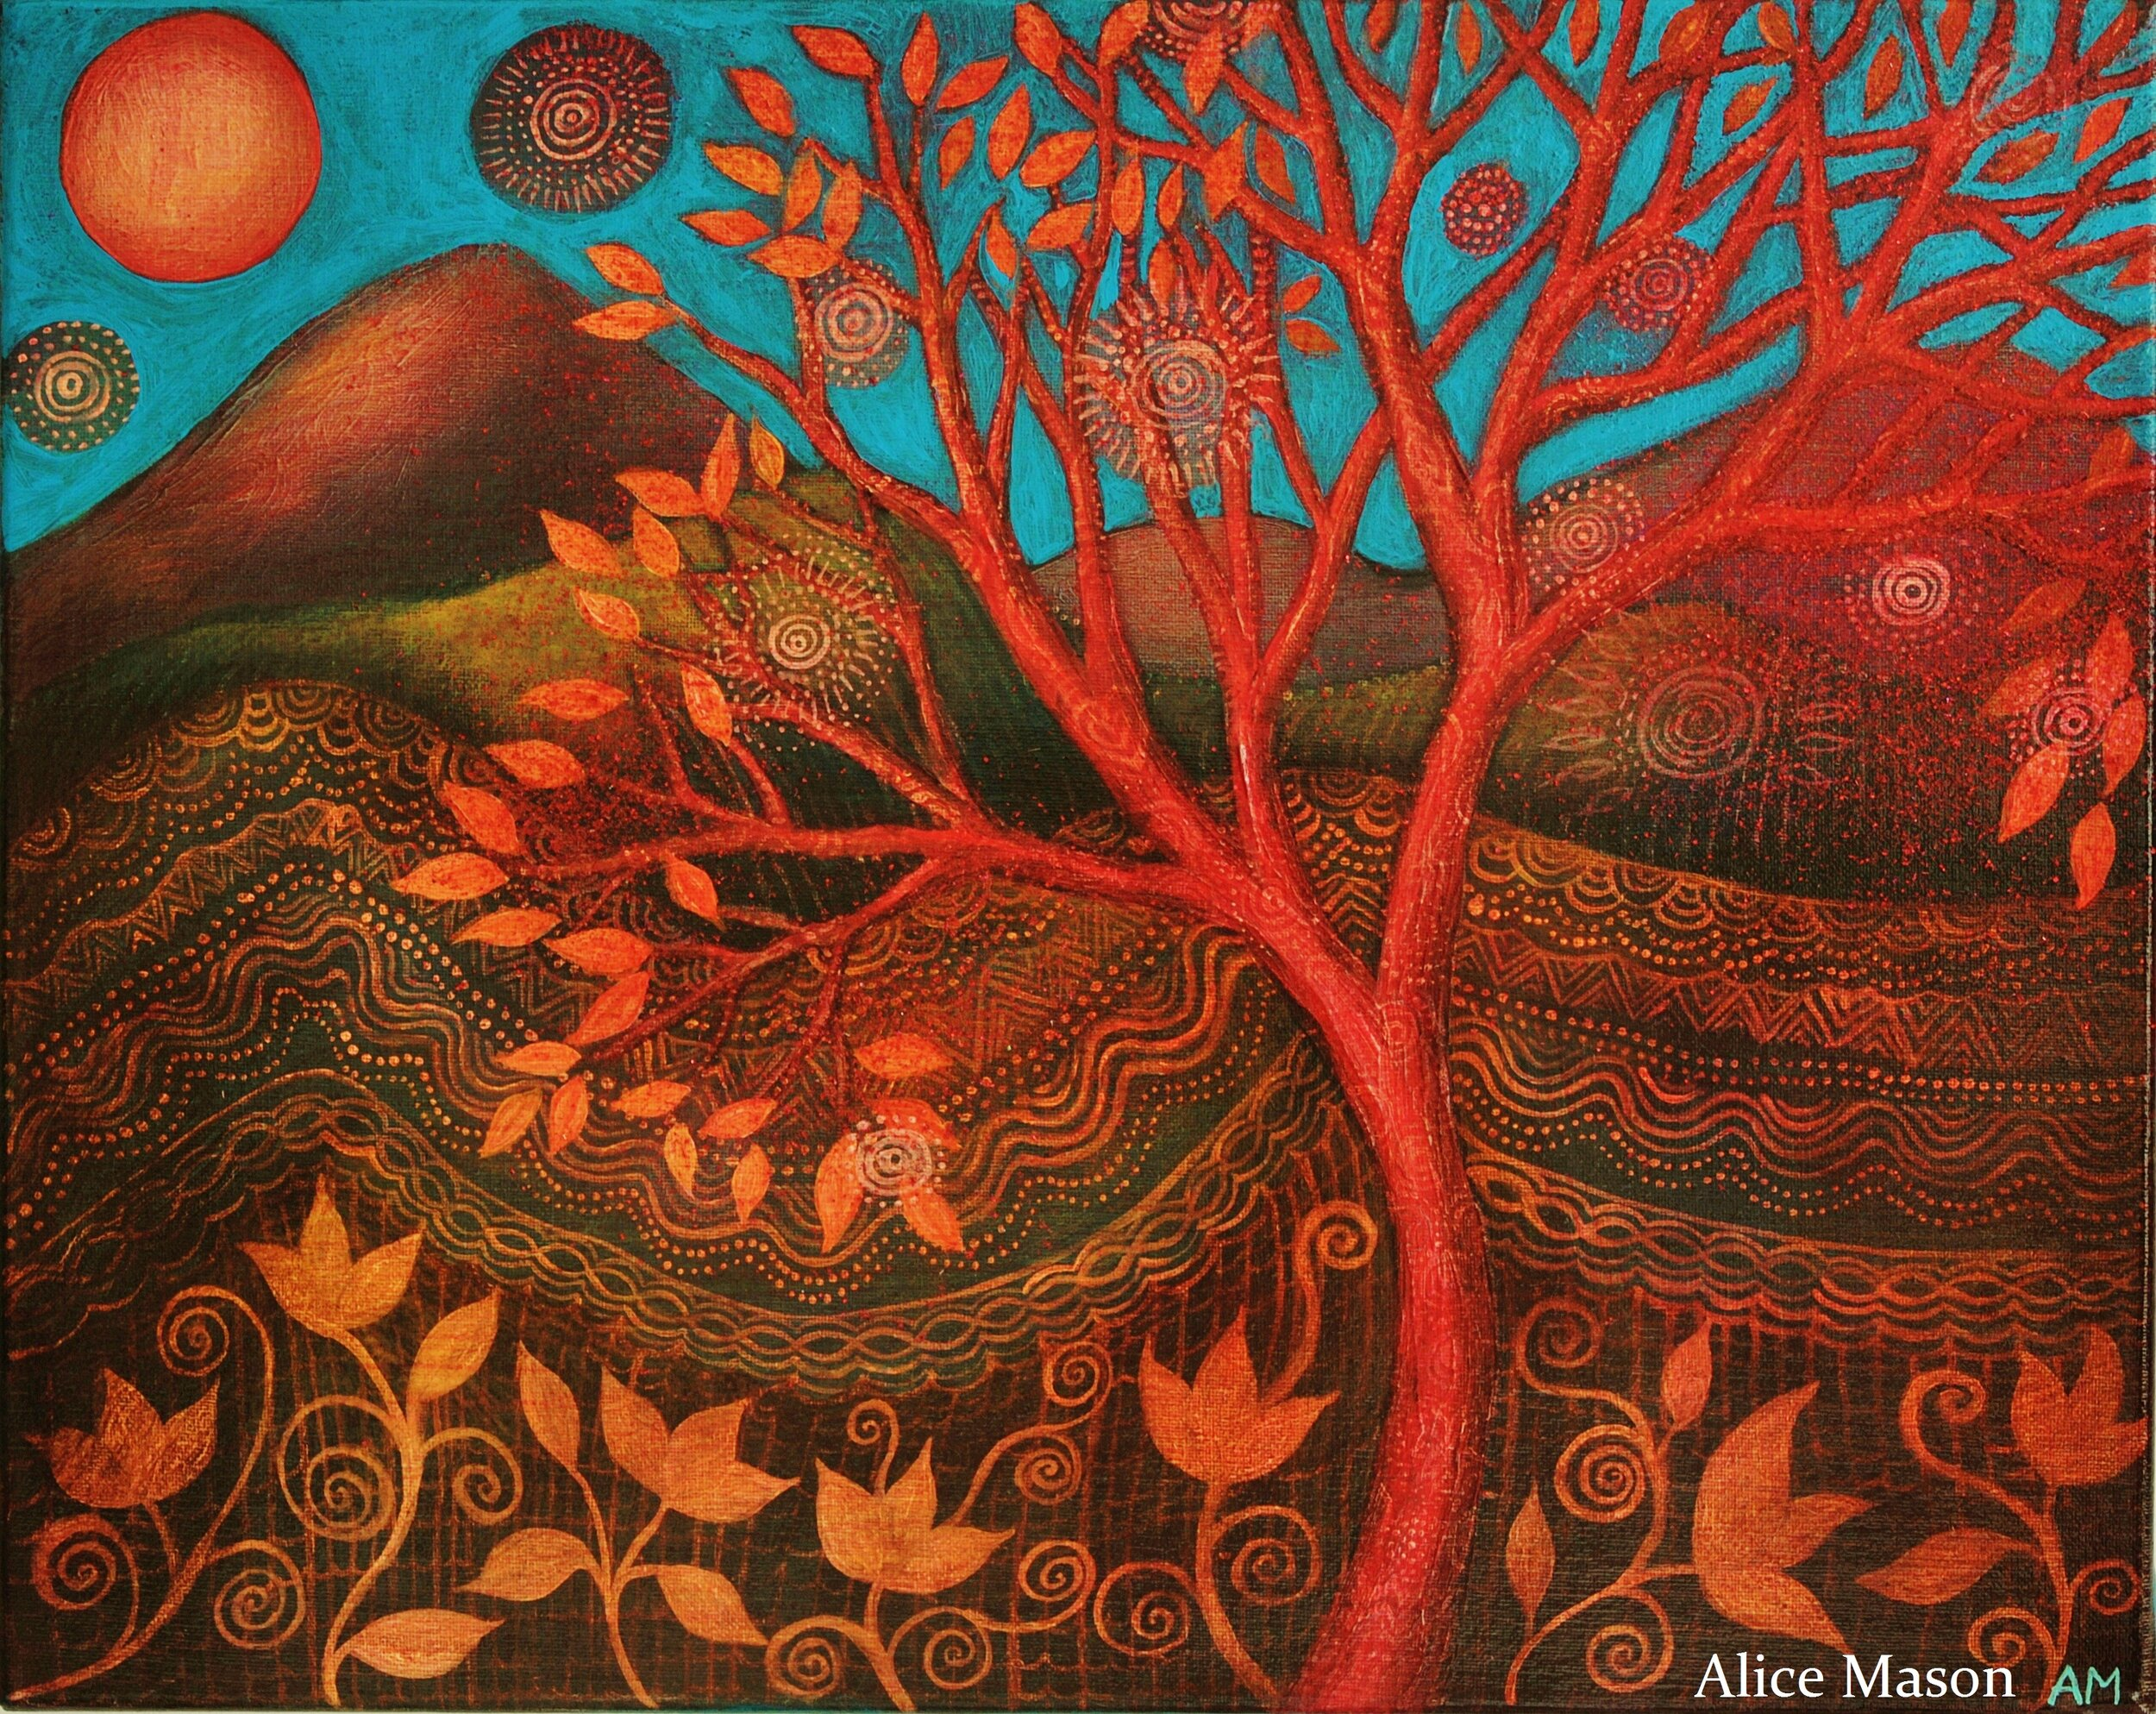 Alice Mason, 'Autumn', 2012.jpg